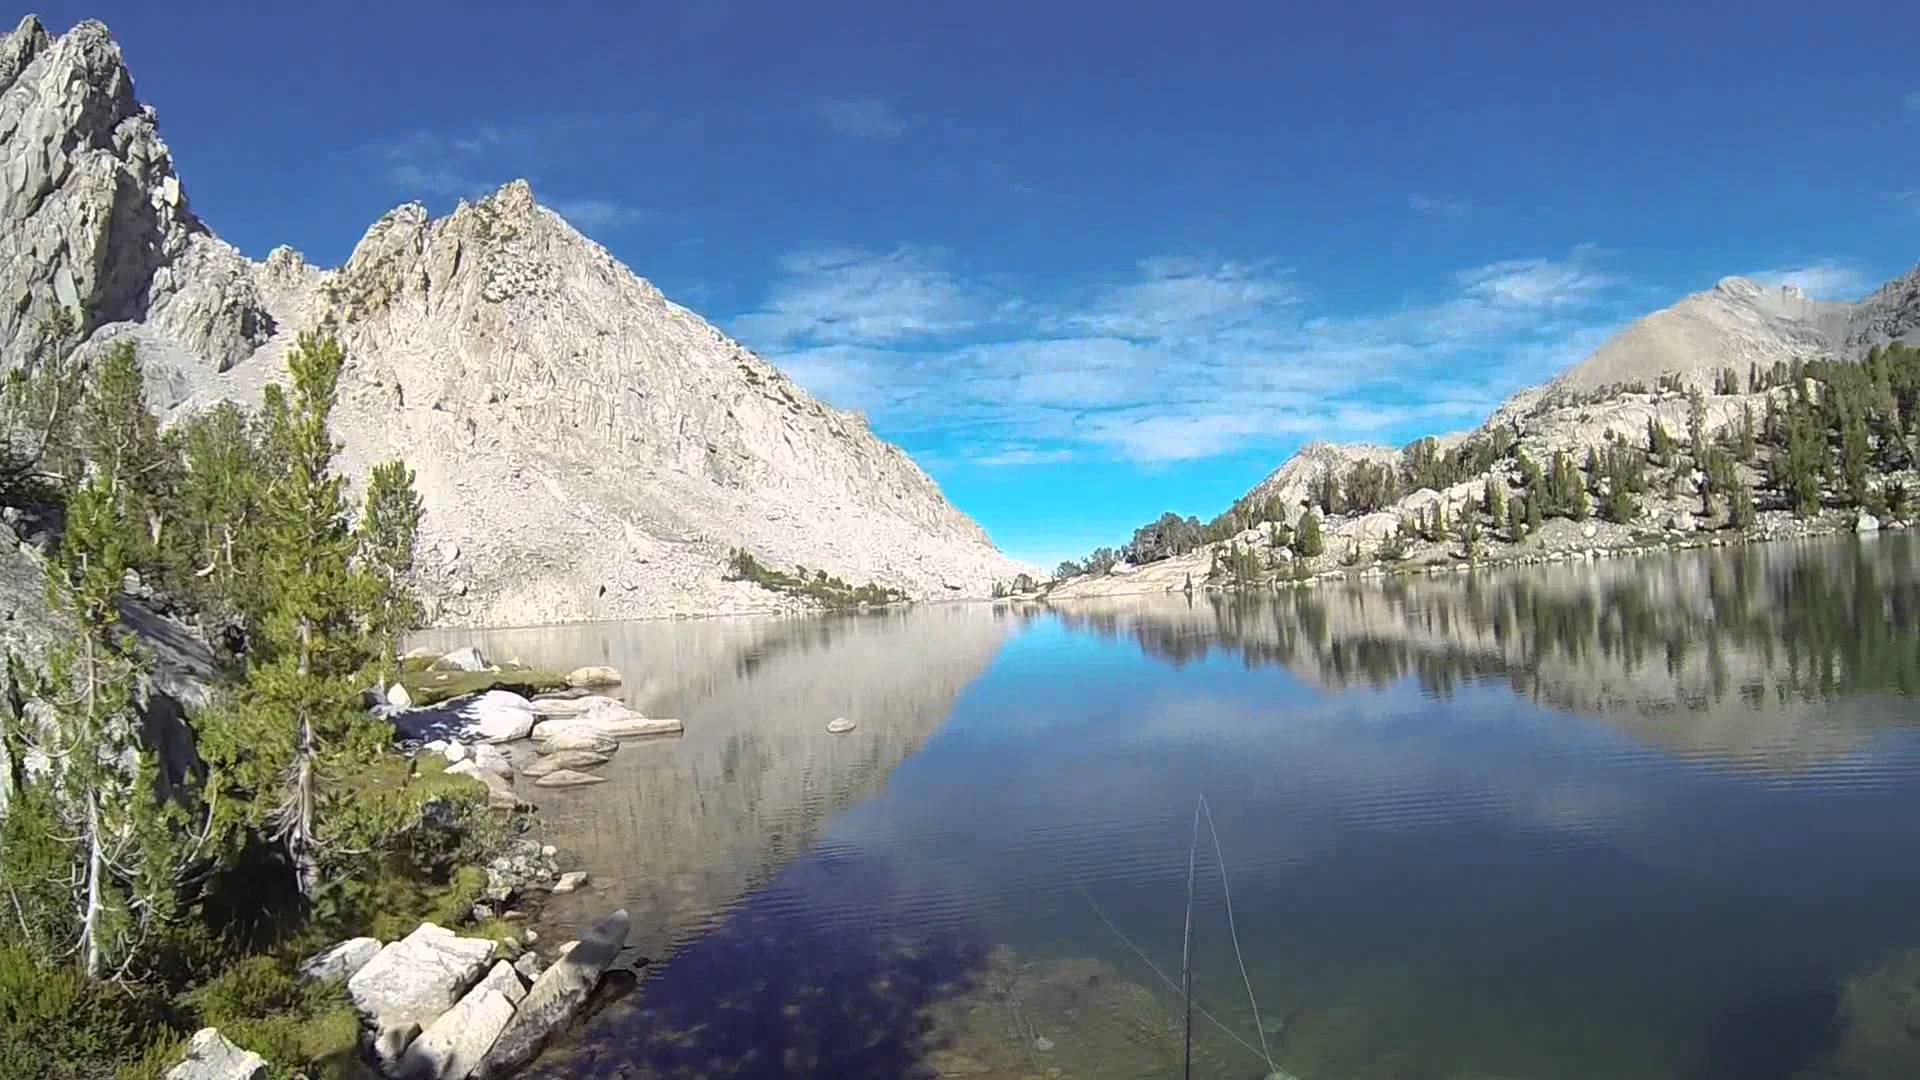 Fishing for trout in Kearsarge Lake in the Kings Canyon National